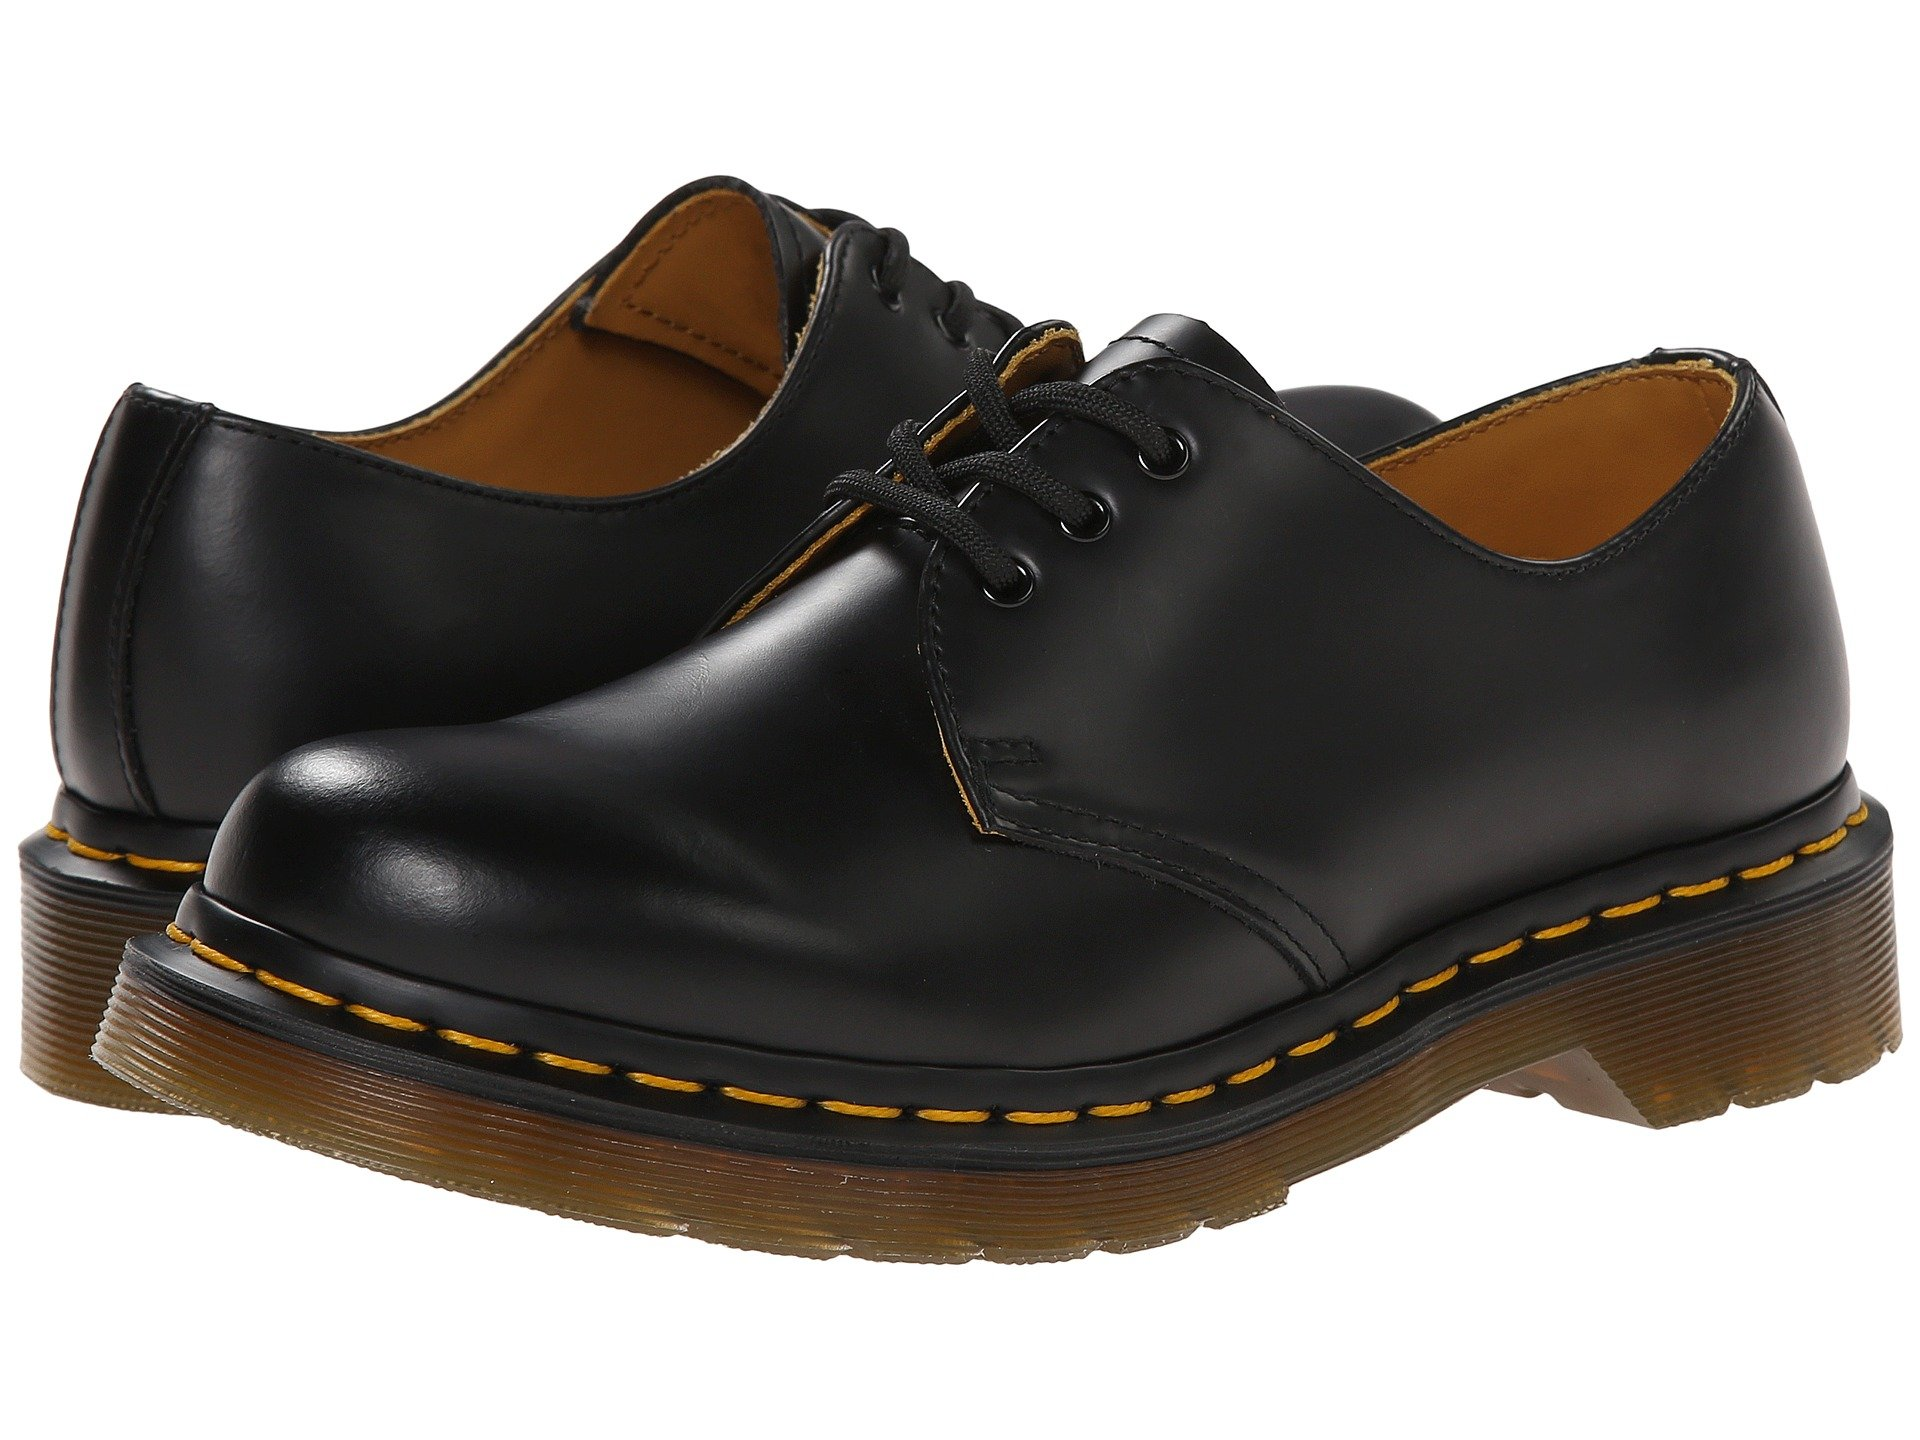 Womens Dr Martens Shoes Uk